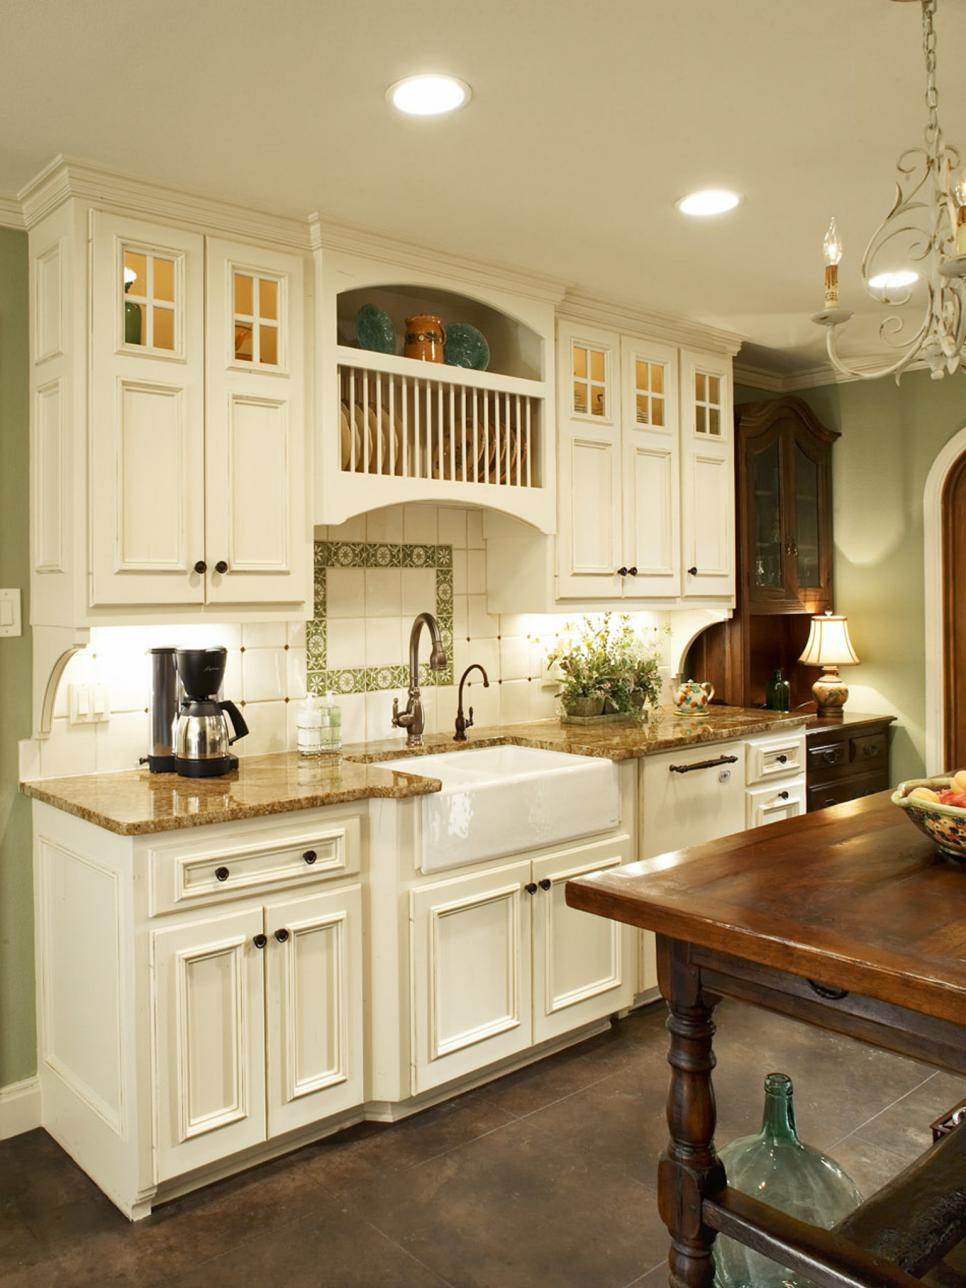 Fantastic farmhouse sinks apron front sinks in gorgeous - Country style kitchen cabinets design ...